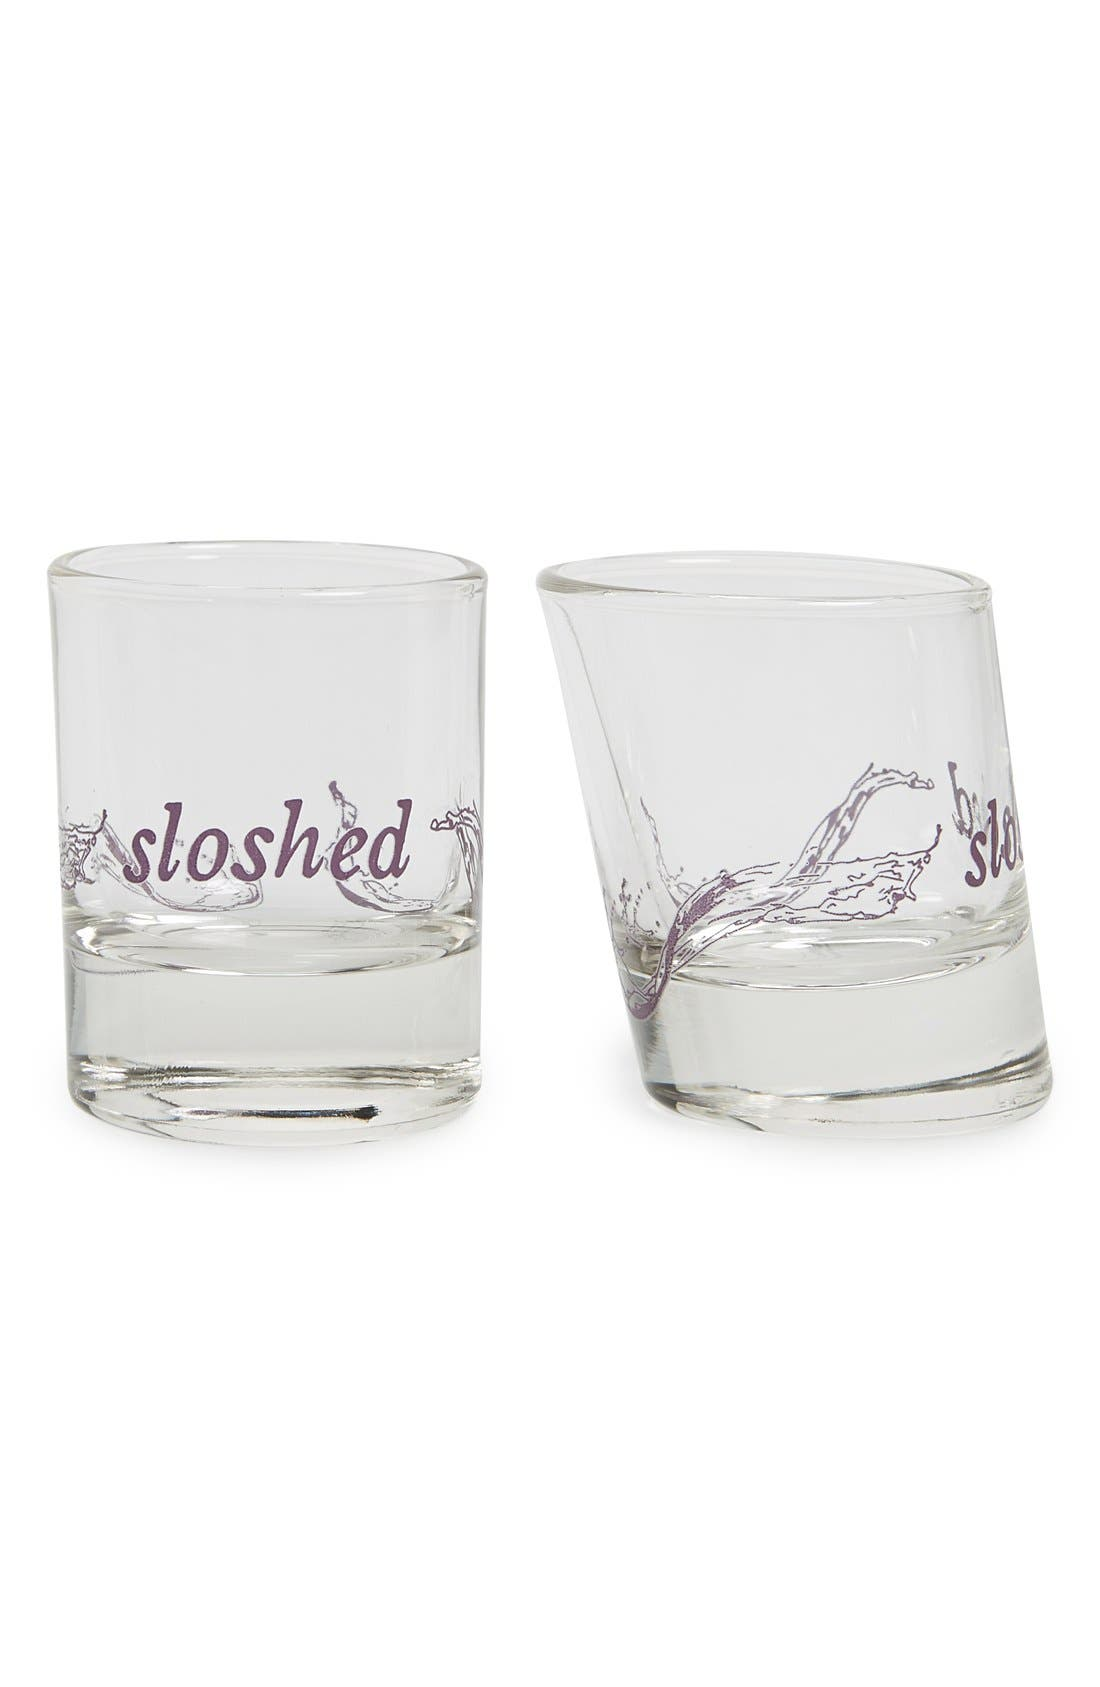 Alternate Image 1 Selected - Fishs Eddy 'Sloshed' Shot Glasses (Set of 2)